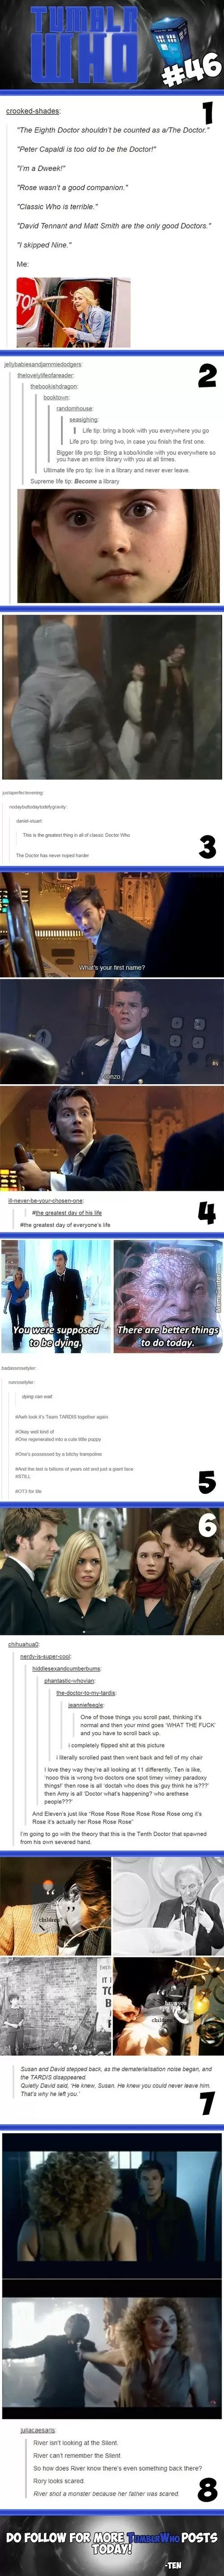 The first one is literally me my Who life. Paul McGann is quite possibly my favorite Doctor, the Doctor can be any age, we're WHOVIANS, Rose, while overrated, is still pretty cool, Classic Who is lit, EVERY Doctor is good in some respect, and Nine should NEVER be skipped.